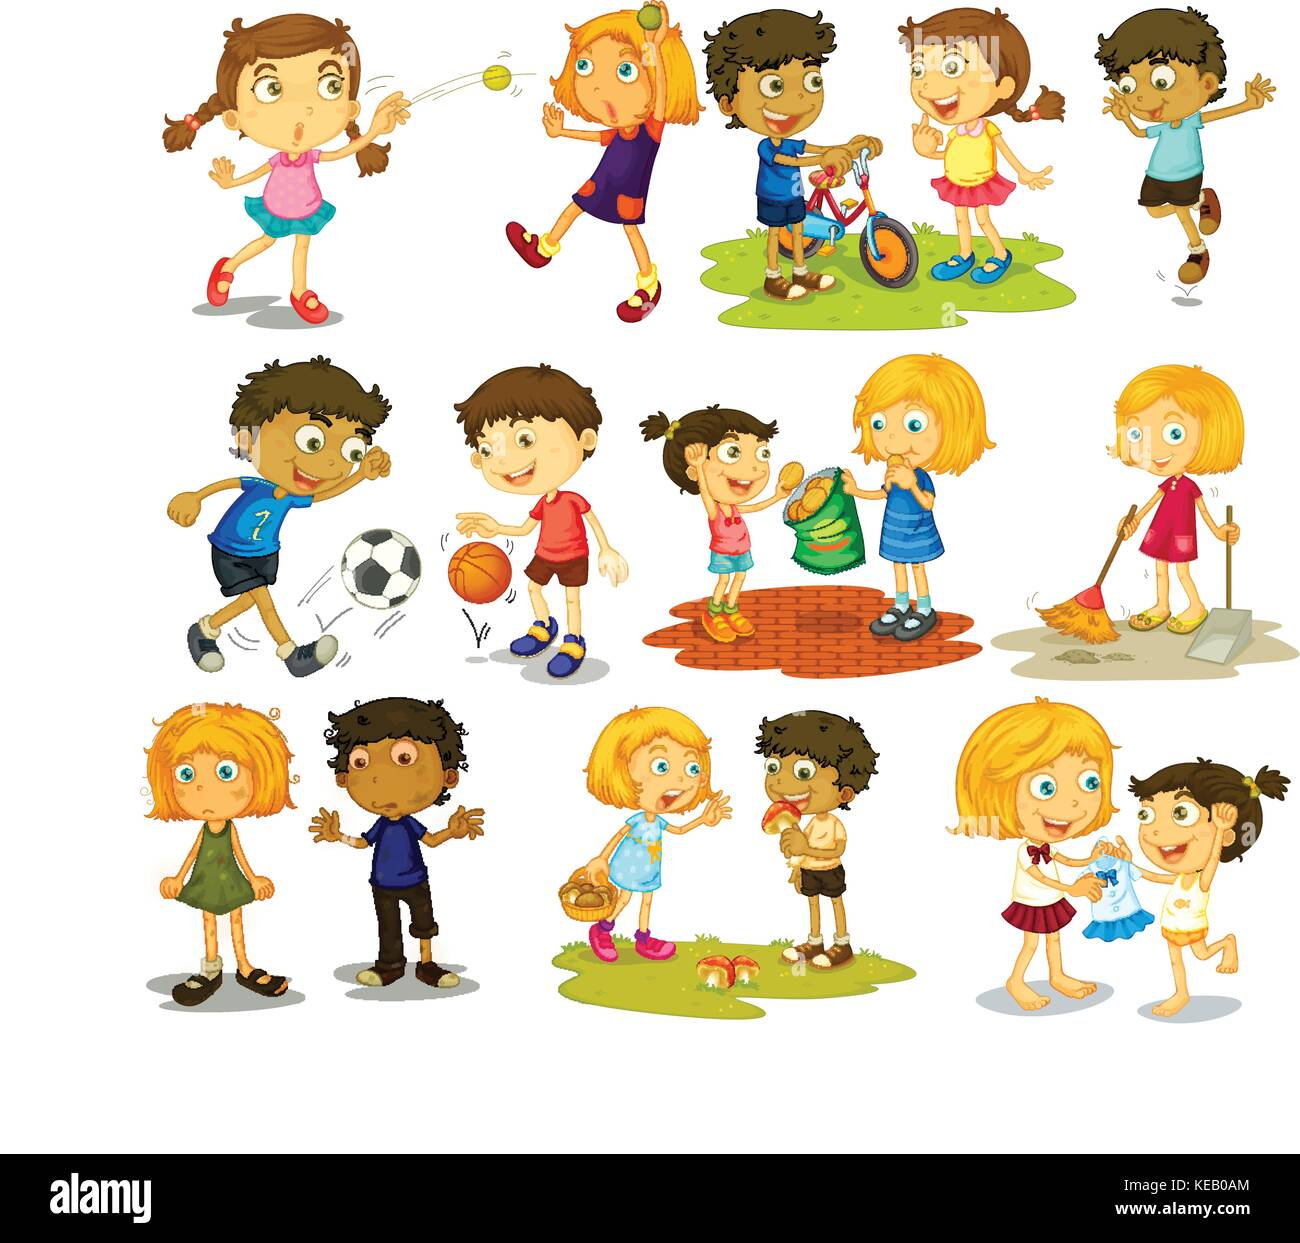 Illustration Of Children Doing Different Sports And Activities Stock